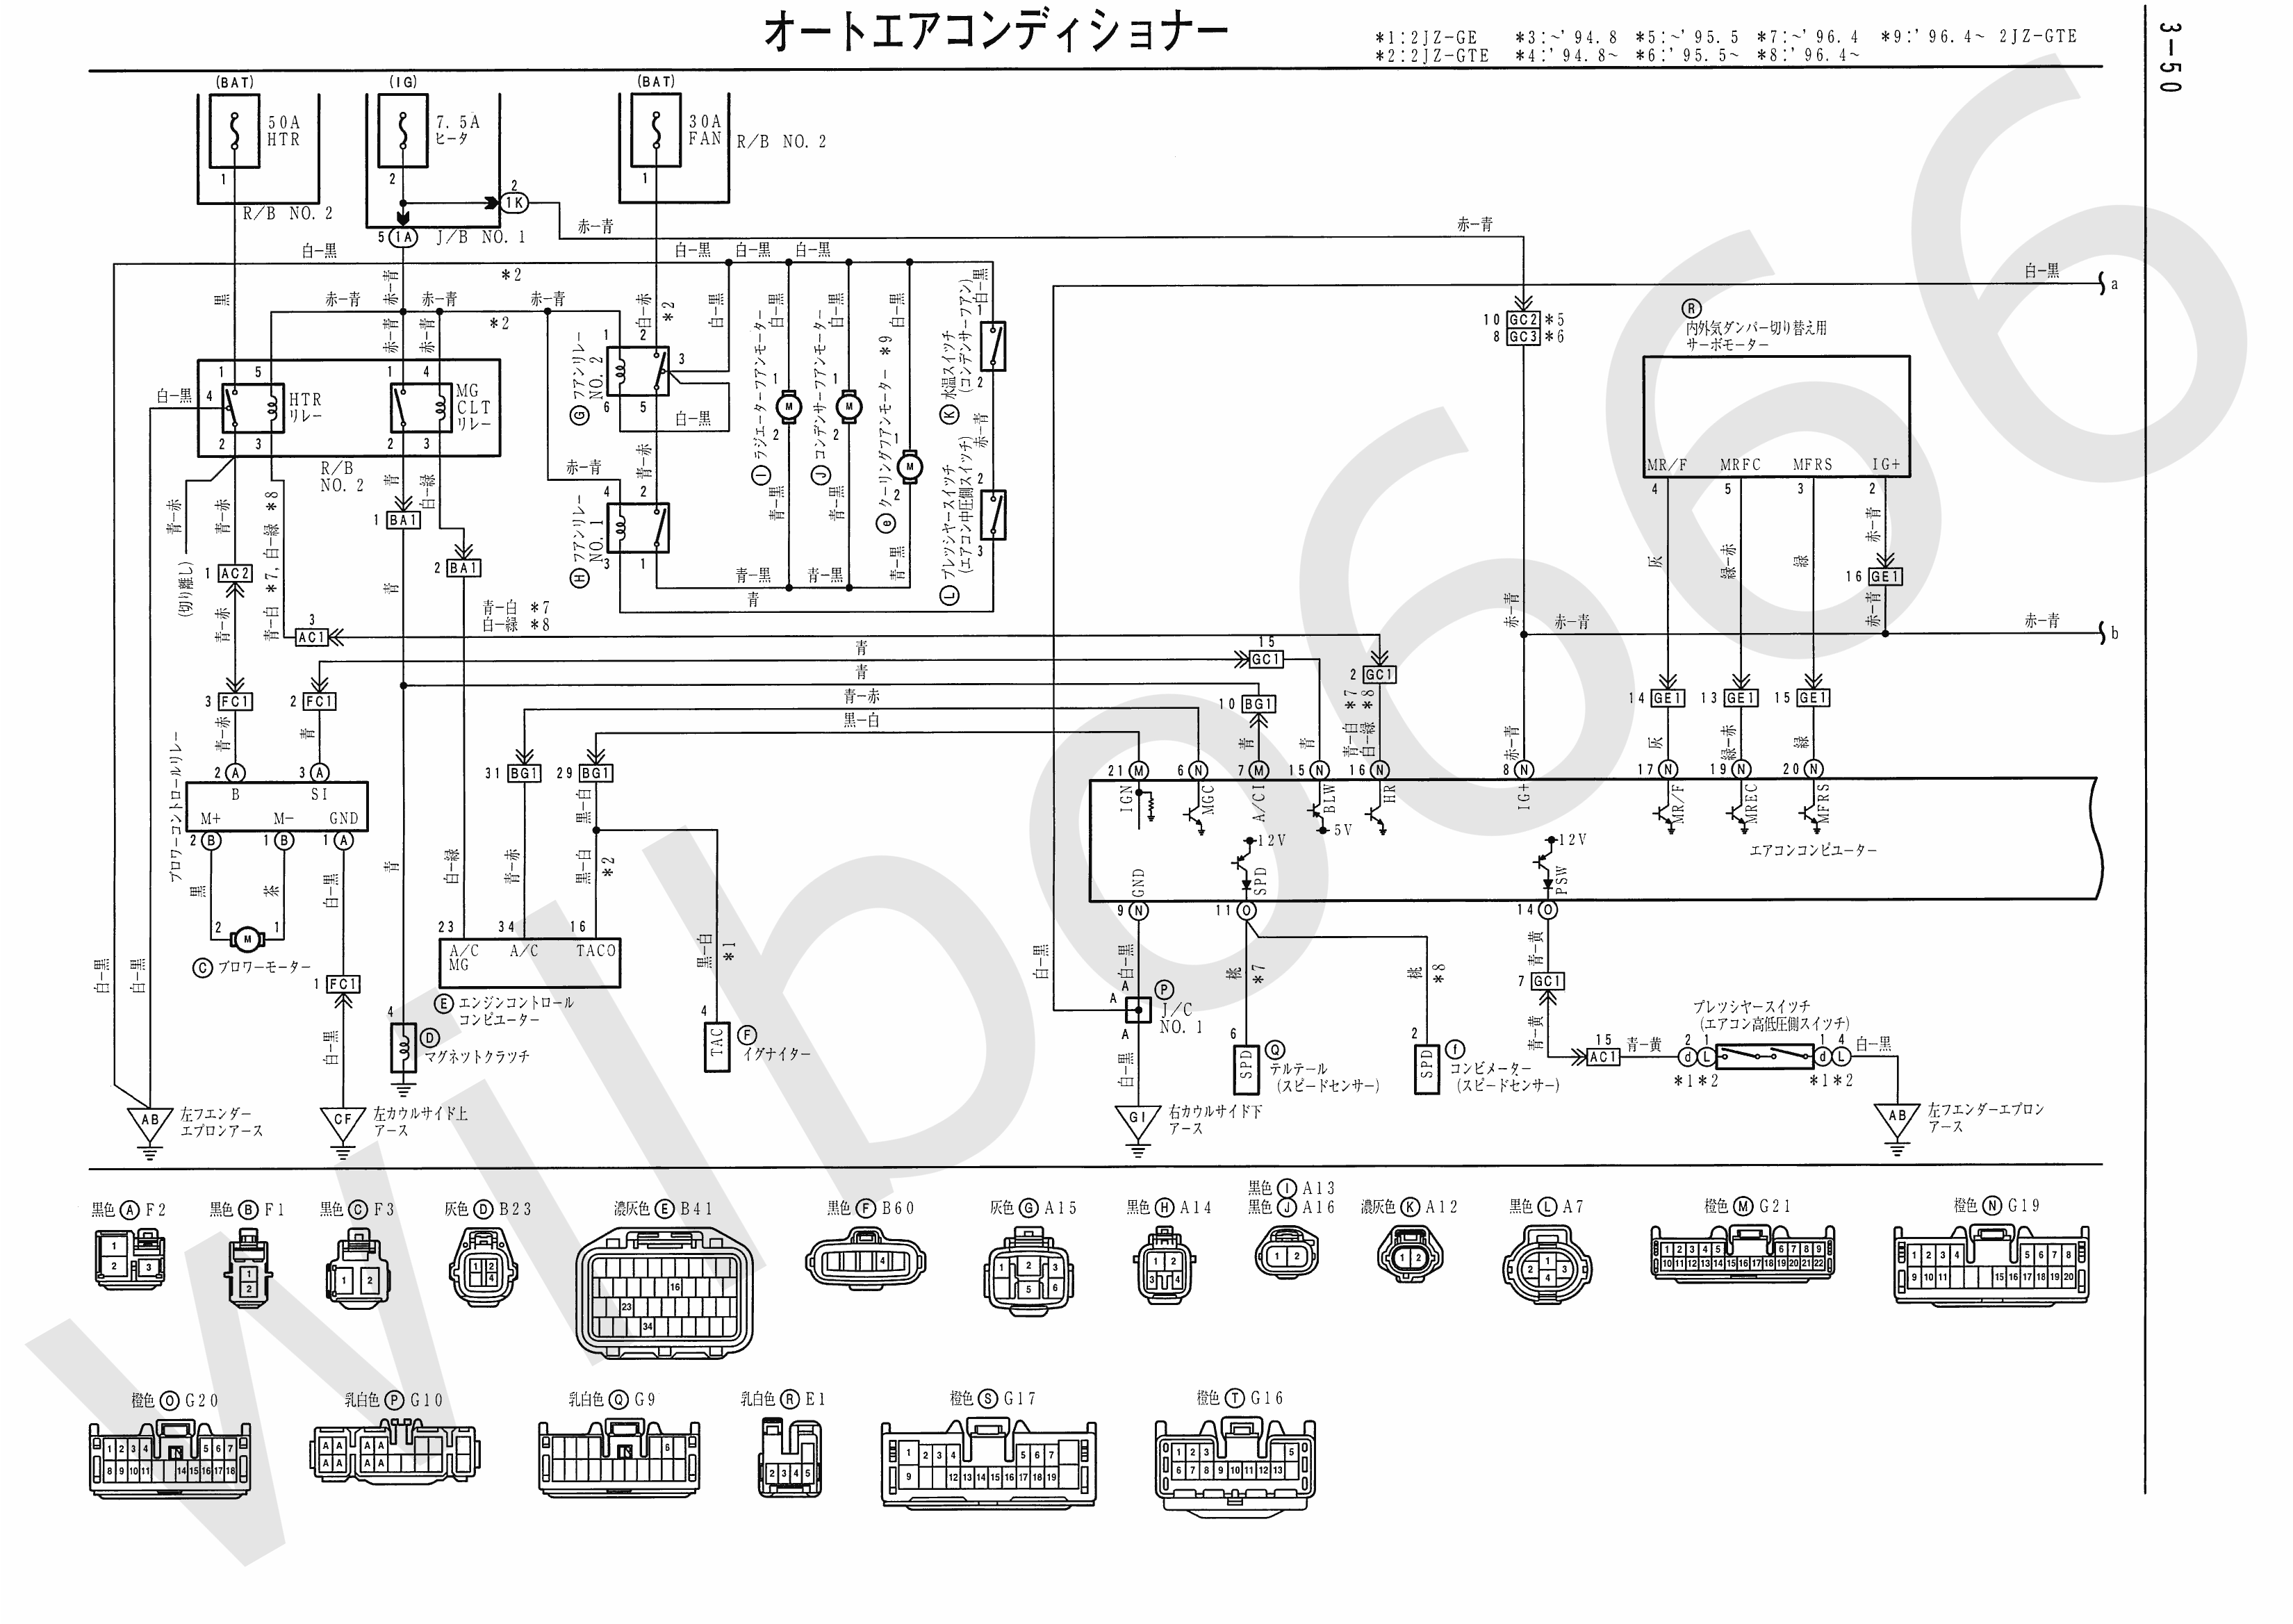 1985 Toyota Supra Wiring Diagram Content Resource Of Celica Fuse Box Layout Wilbo666 2jz Ge Jza80 Engine Rh Pbworks Com 1998 1990